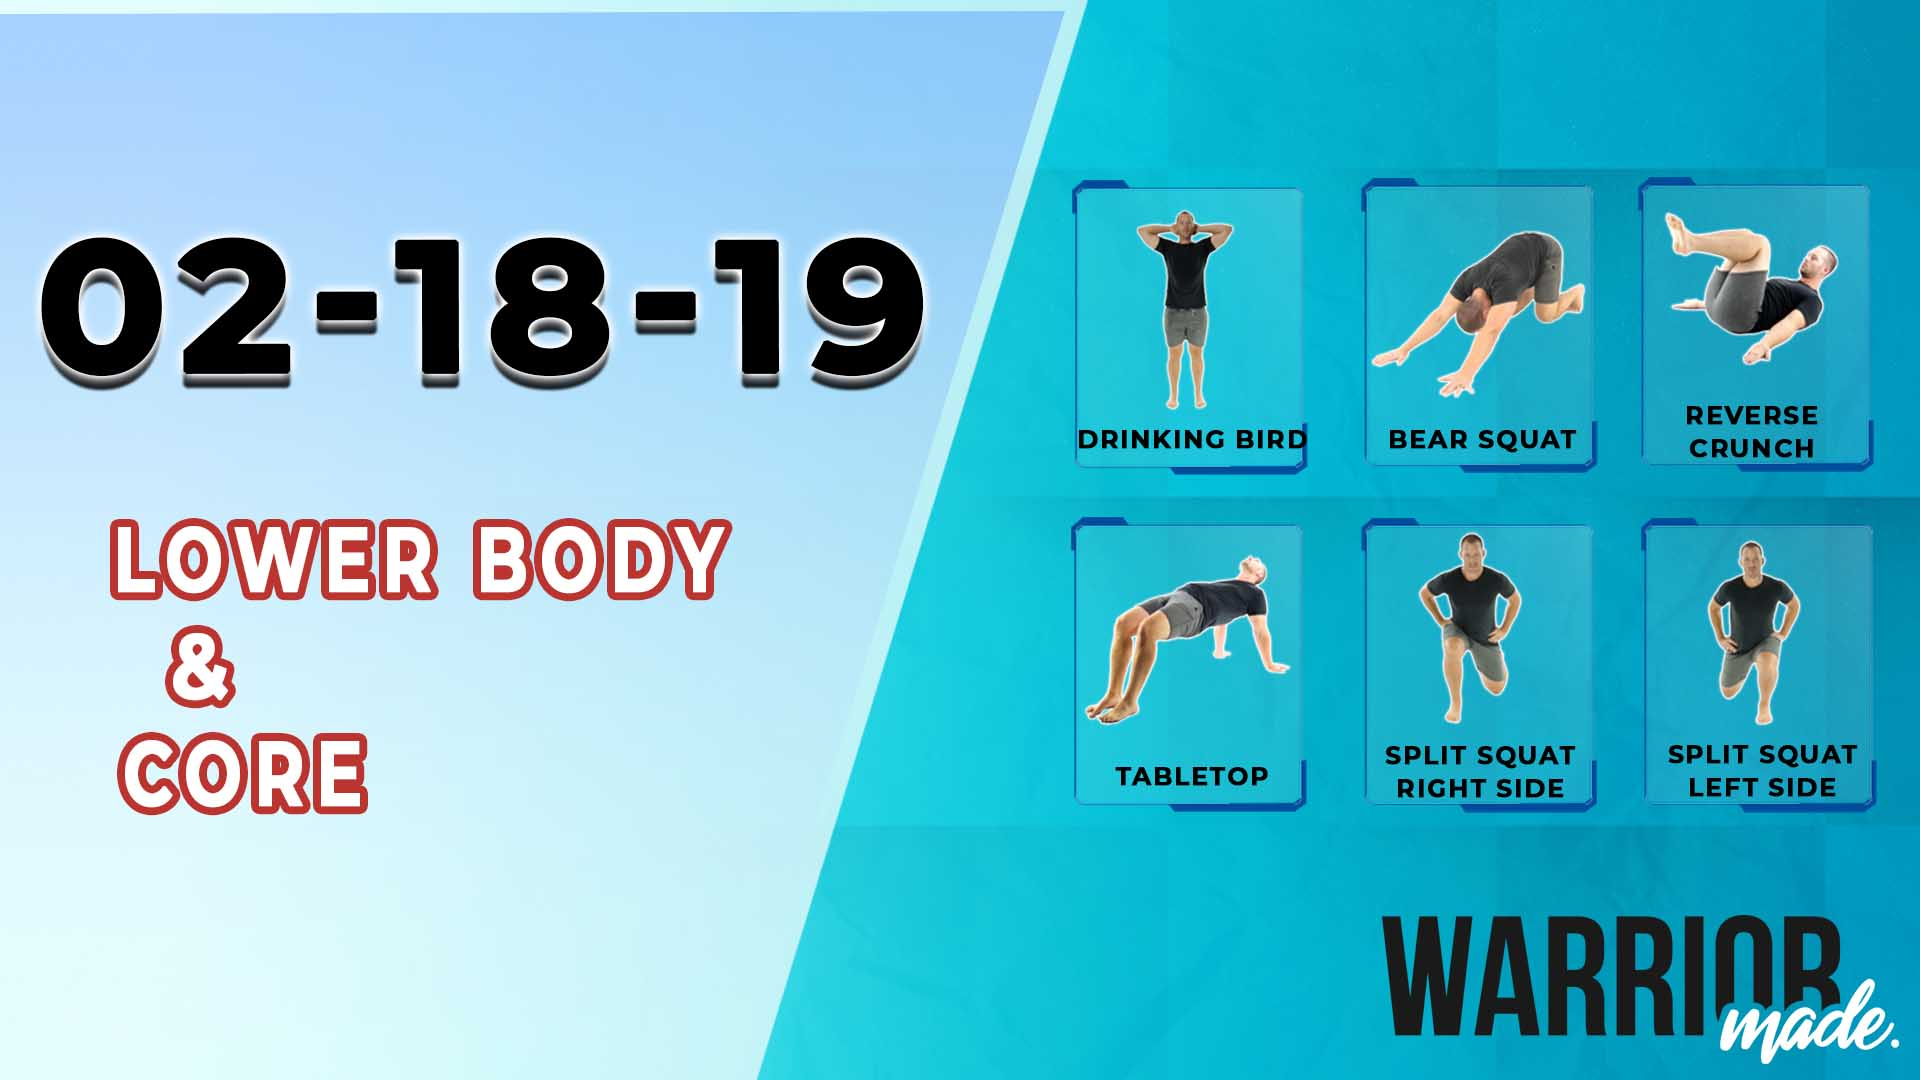 workouts-02-18-19